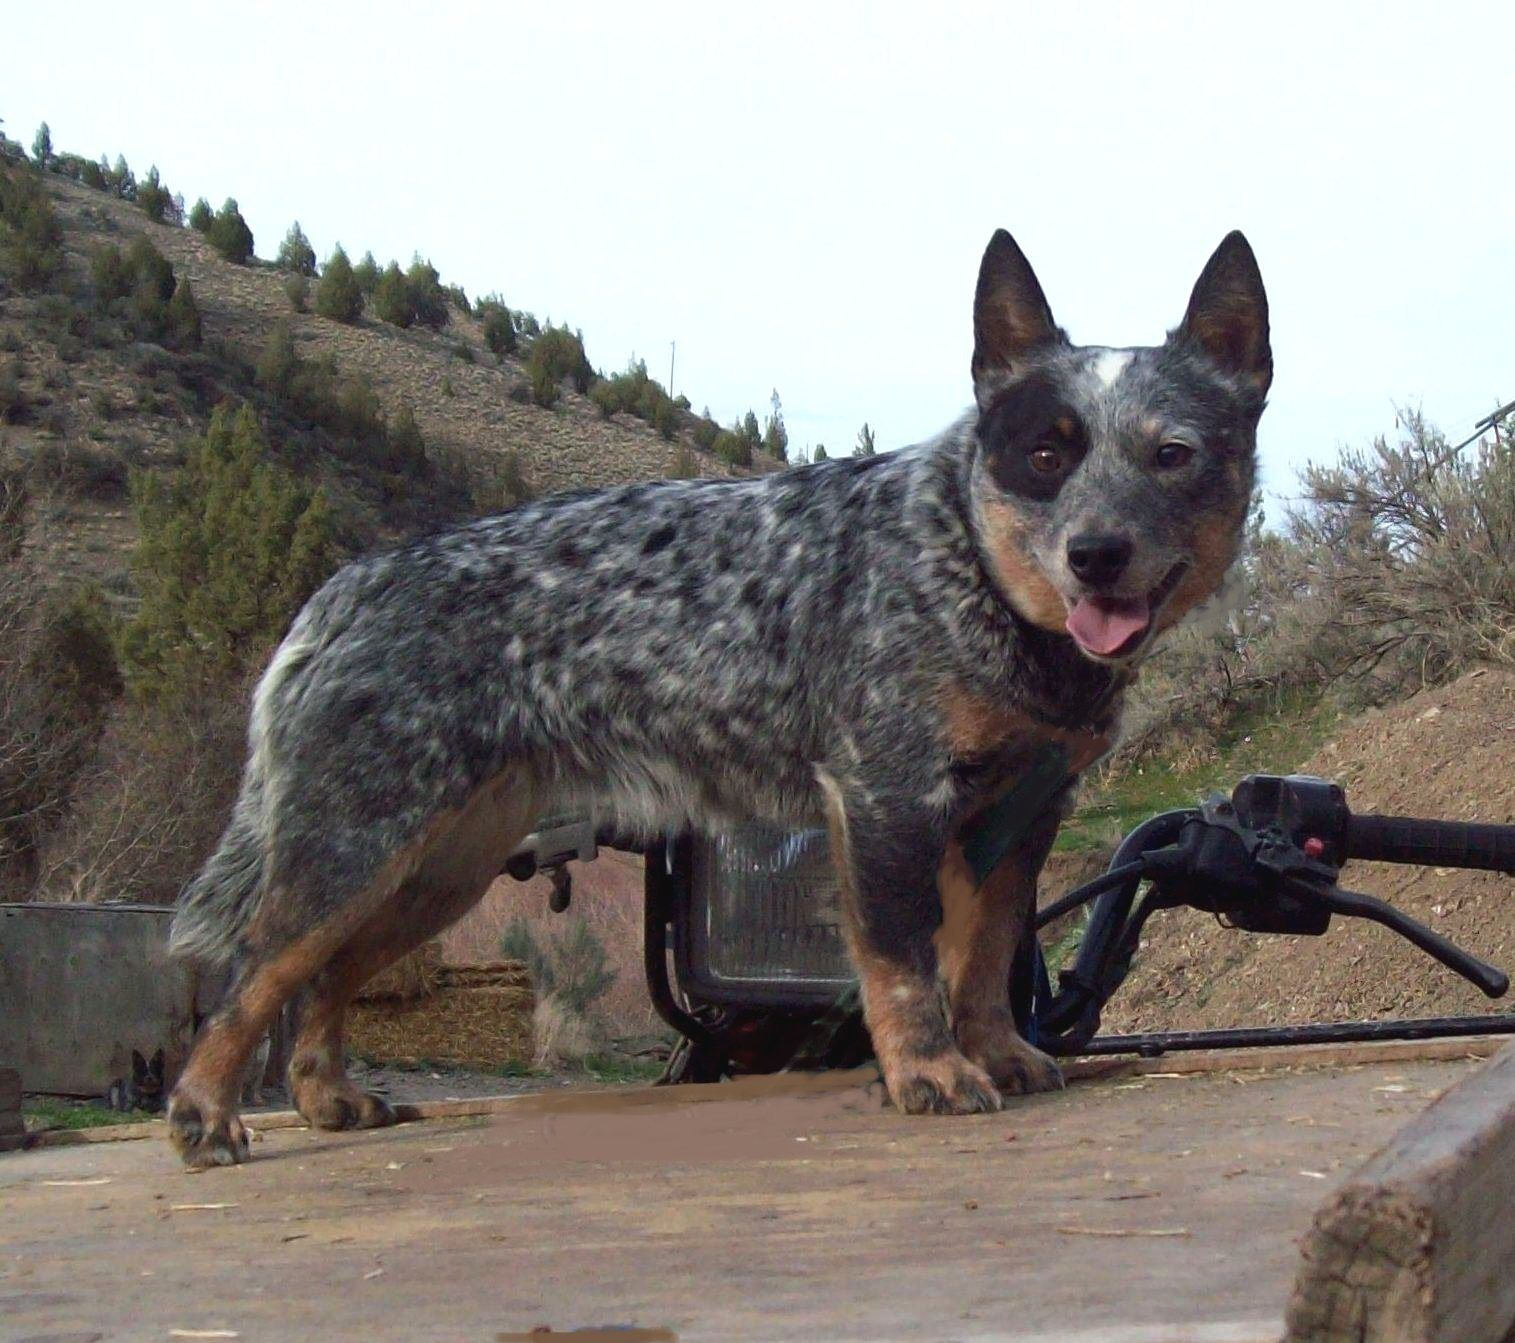 Pin By Gregory Pulliam On Australian Cattle Dog In 2020 Blue Heeler Dogs Cattle Dog Puppy Blue Heeler